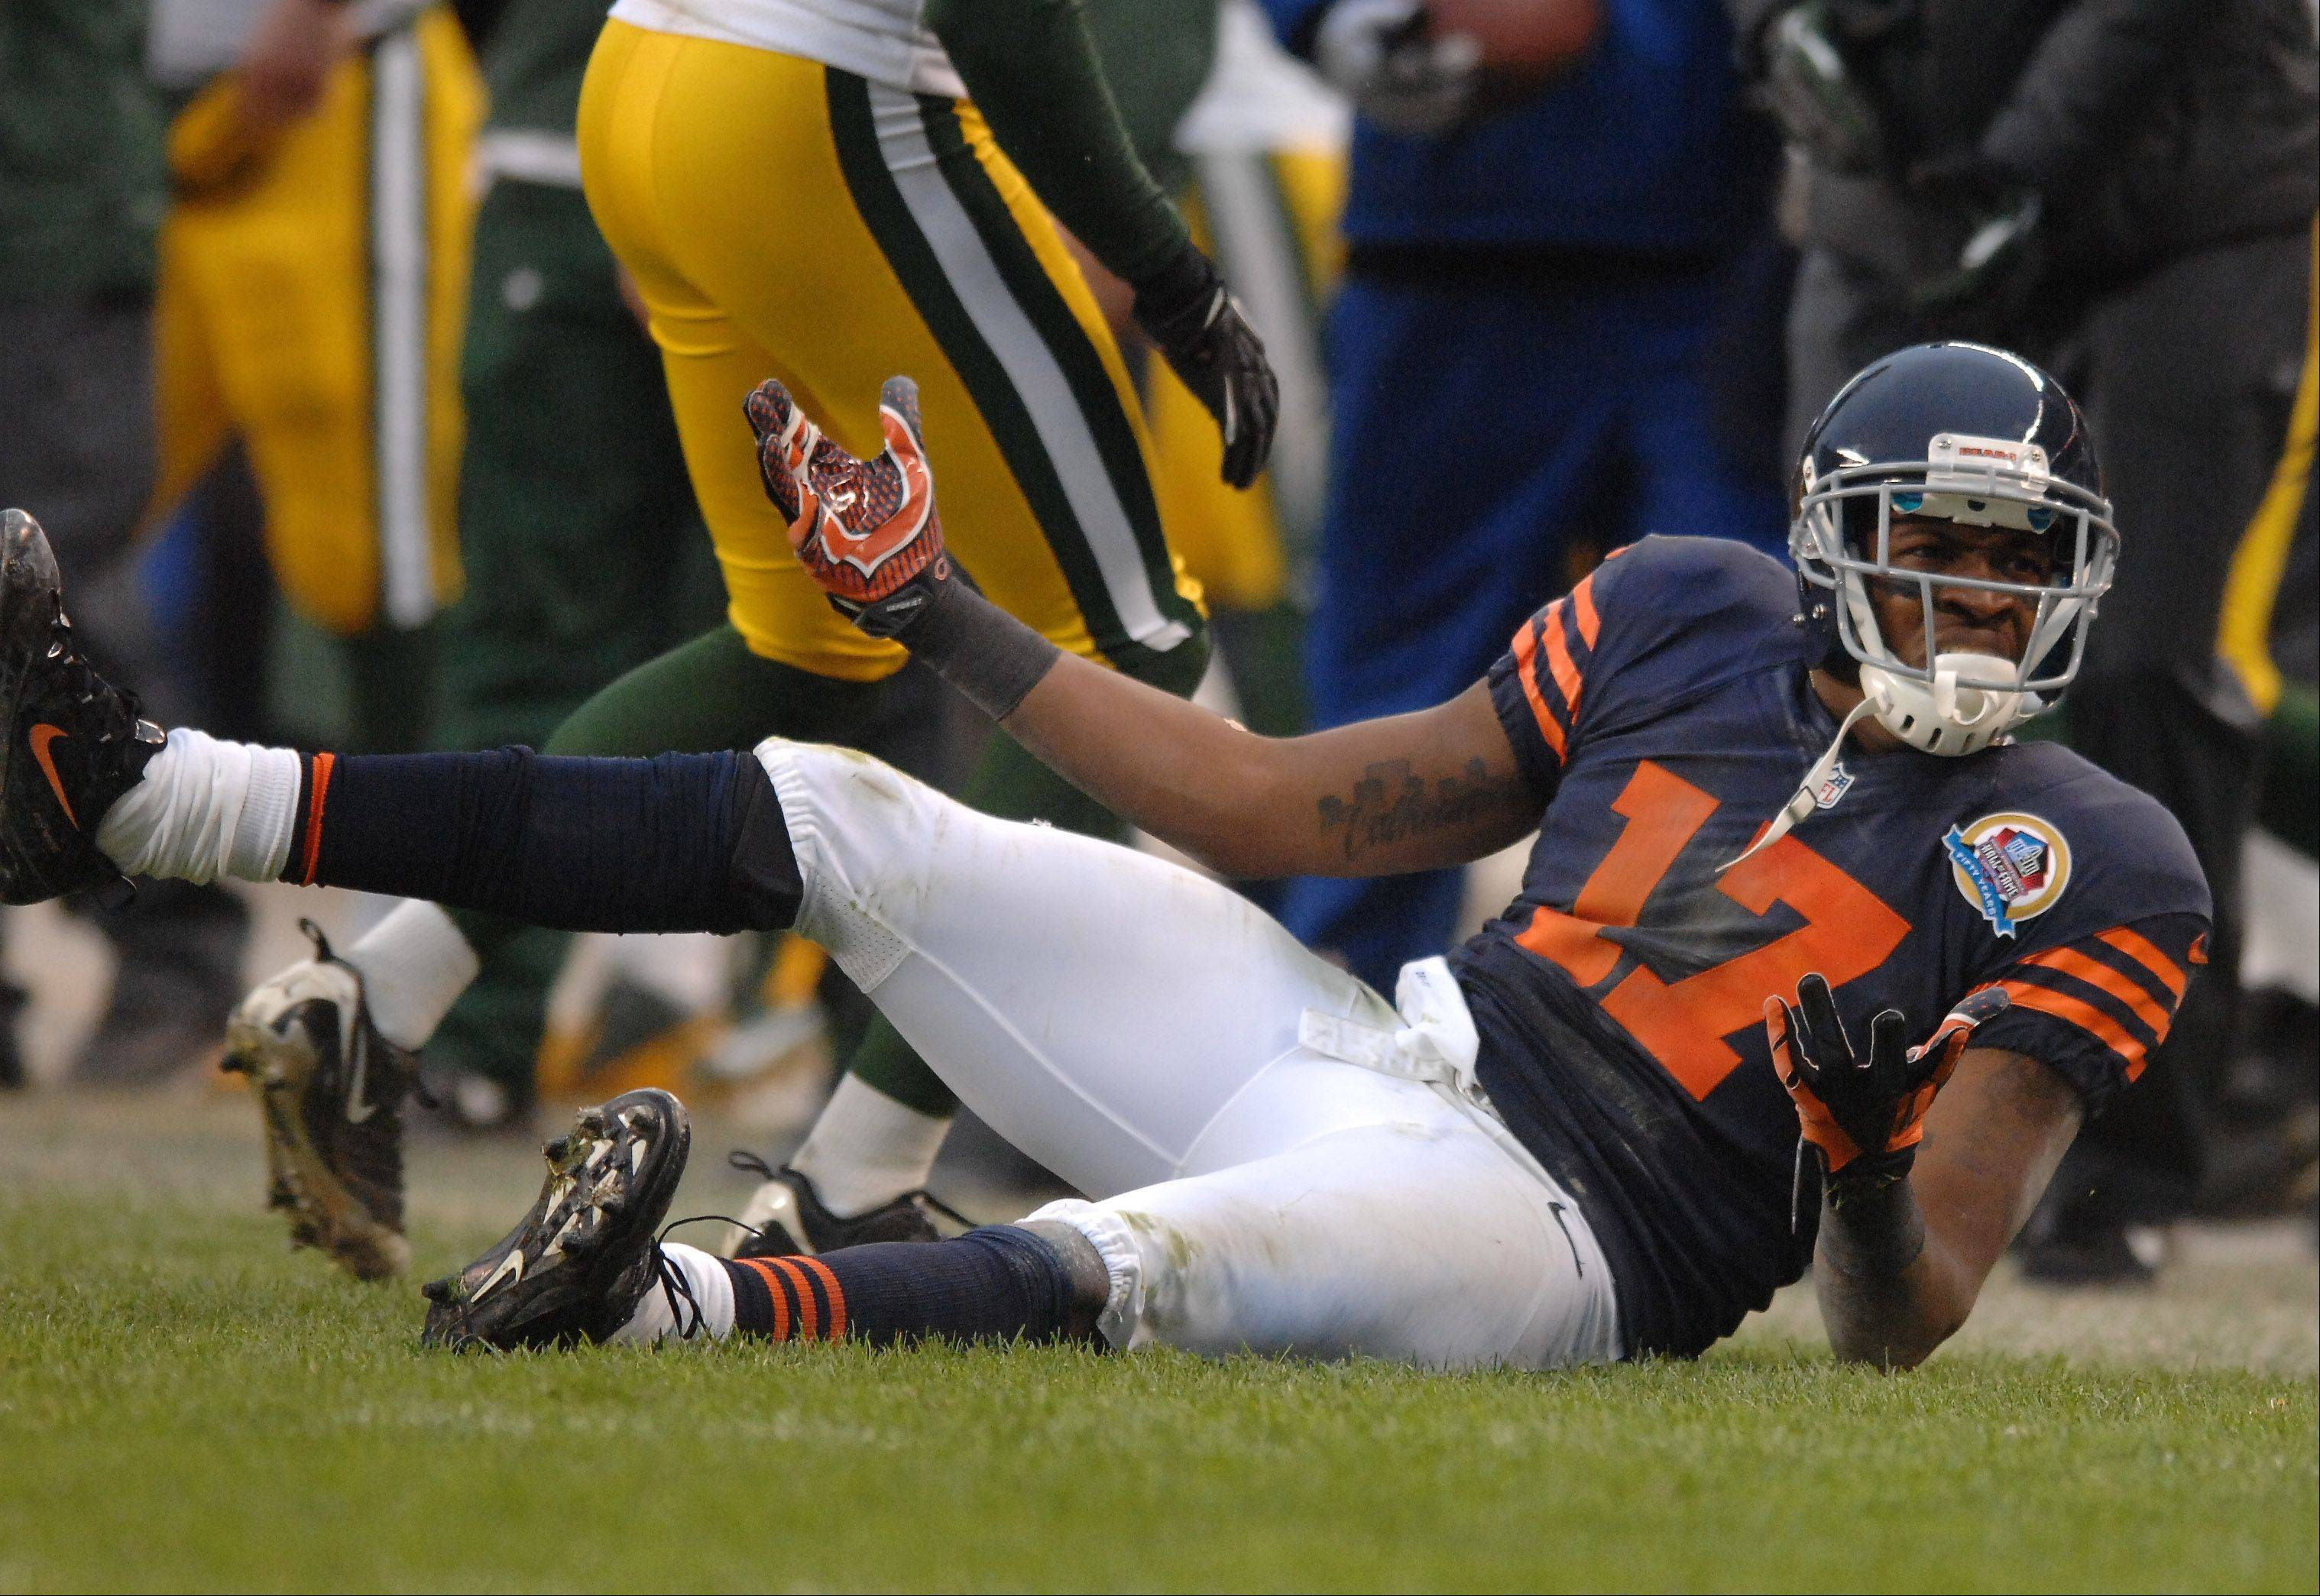 Chicago Bears wide receiver Alshon Jeffery (17) reacts to a call against him during Sunday's game at Soldier Field in Chicago.